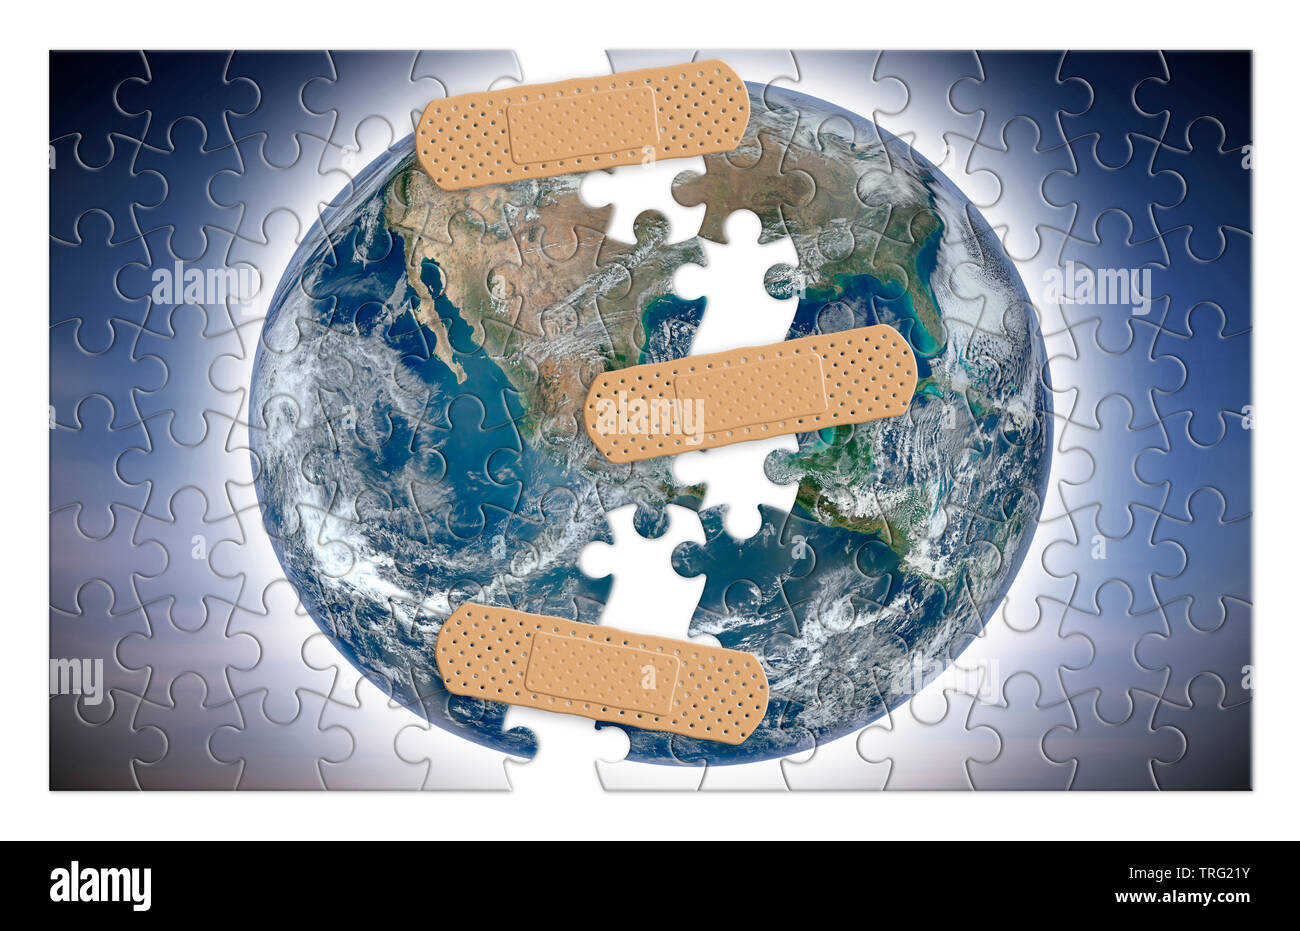 Rebuild our world - concept image with elements from Nasa in jigsaw puzzle shape. - Photo composition with image from NASA. - The image of the planet Stock Photo